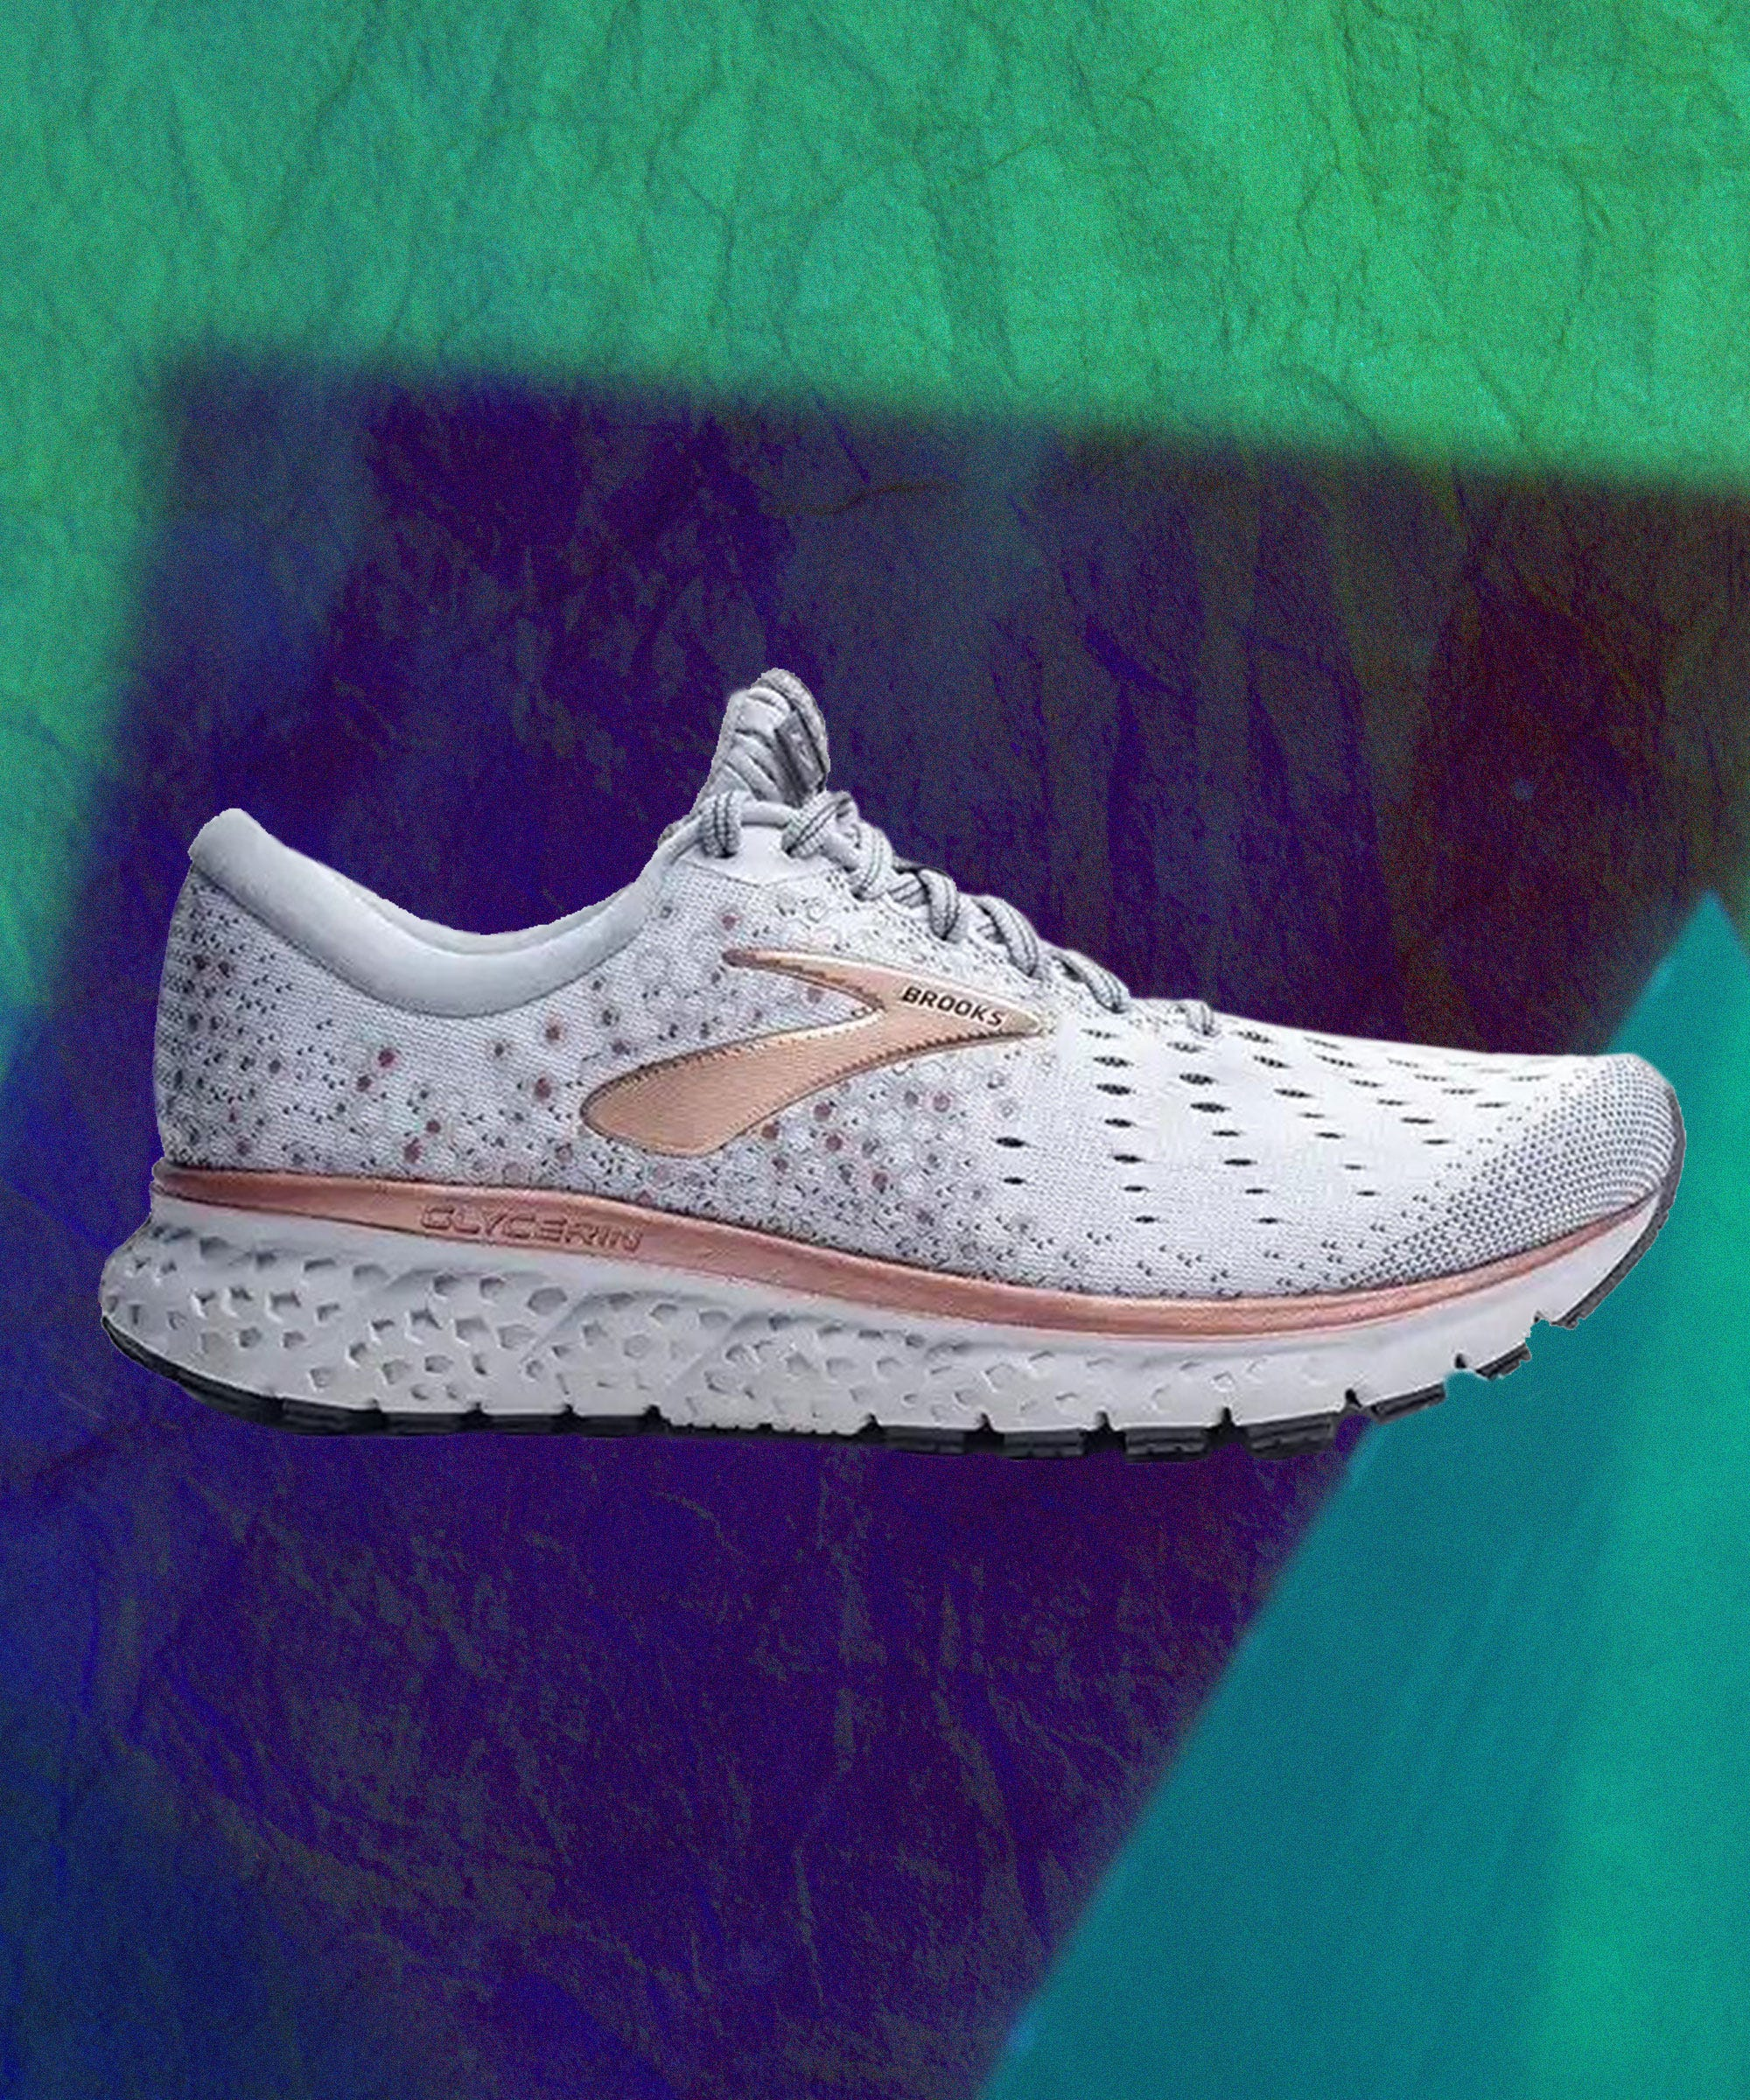 Training For A Race? These Are The Shoes You Need